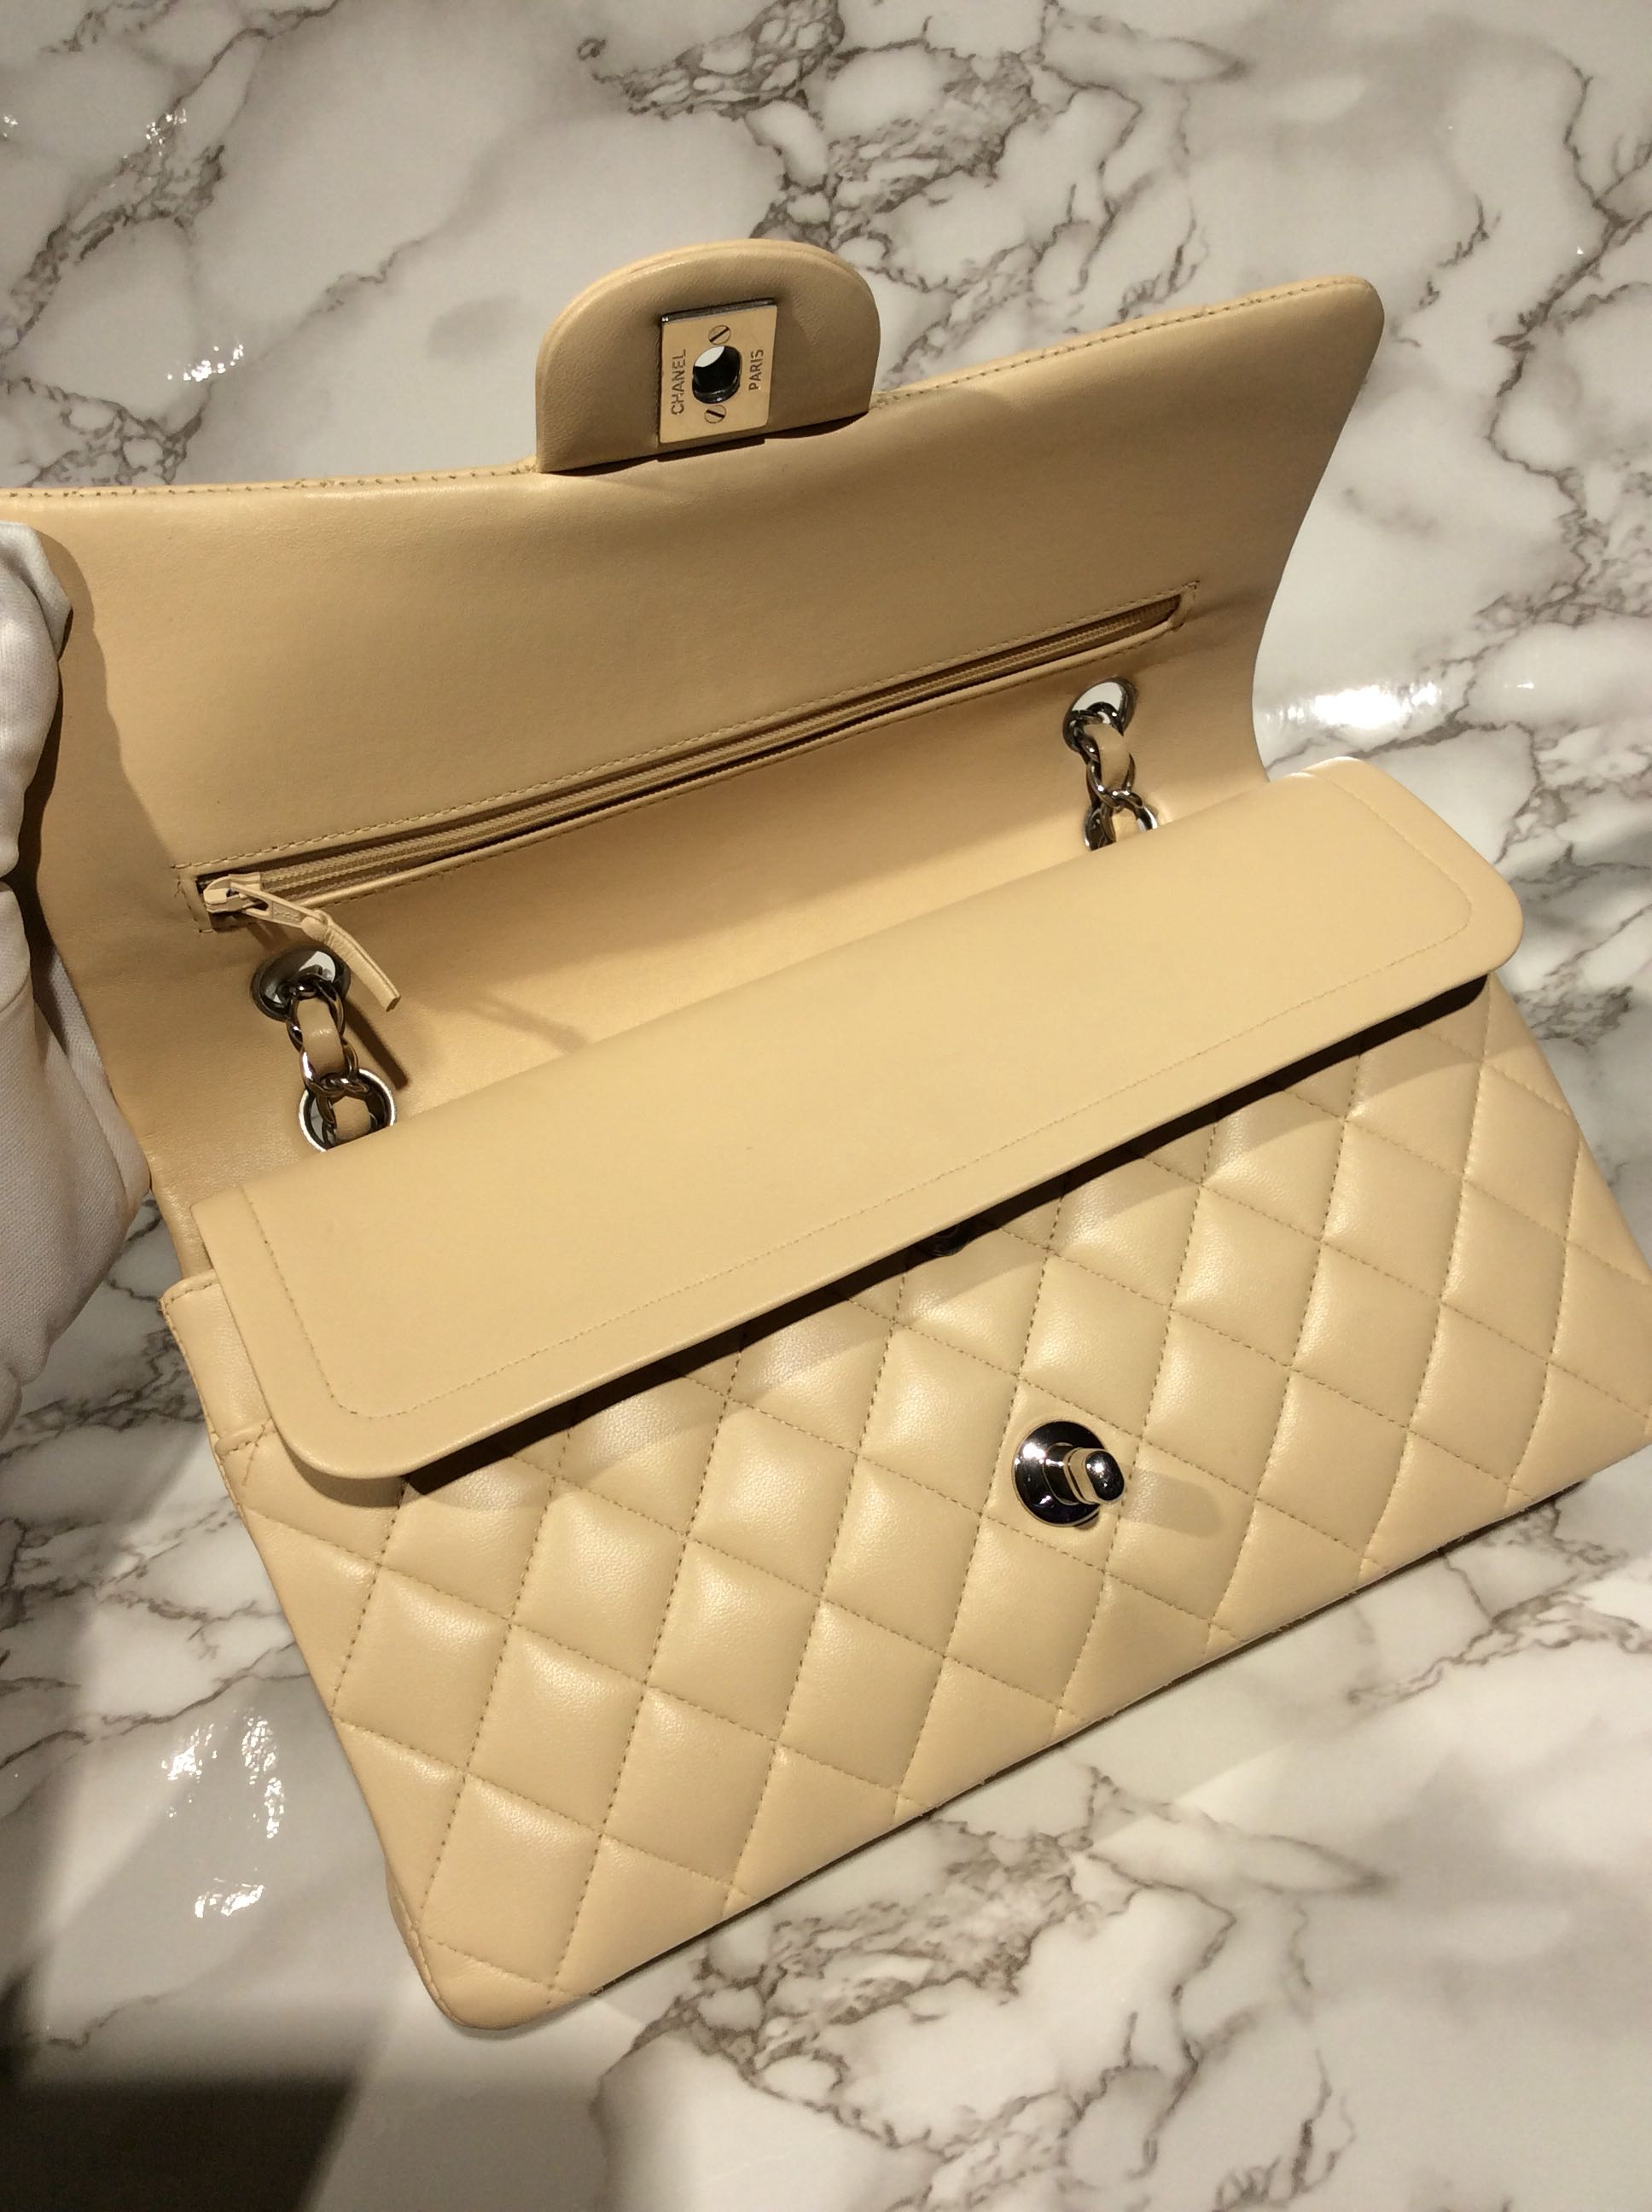 1f6e10fc7bf4 Preloved Chanel Jumbo Double Flap, Luxury, Bags & Wallets, Handbags on  Carousell